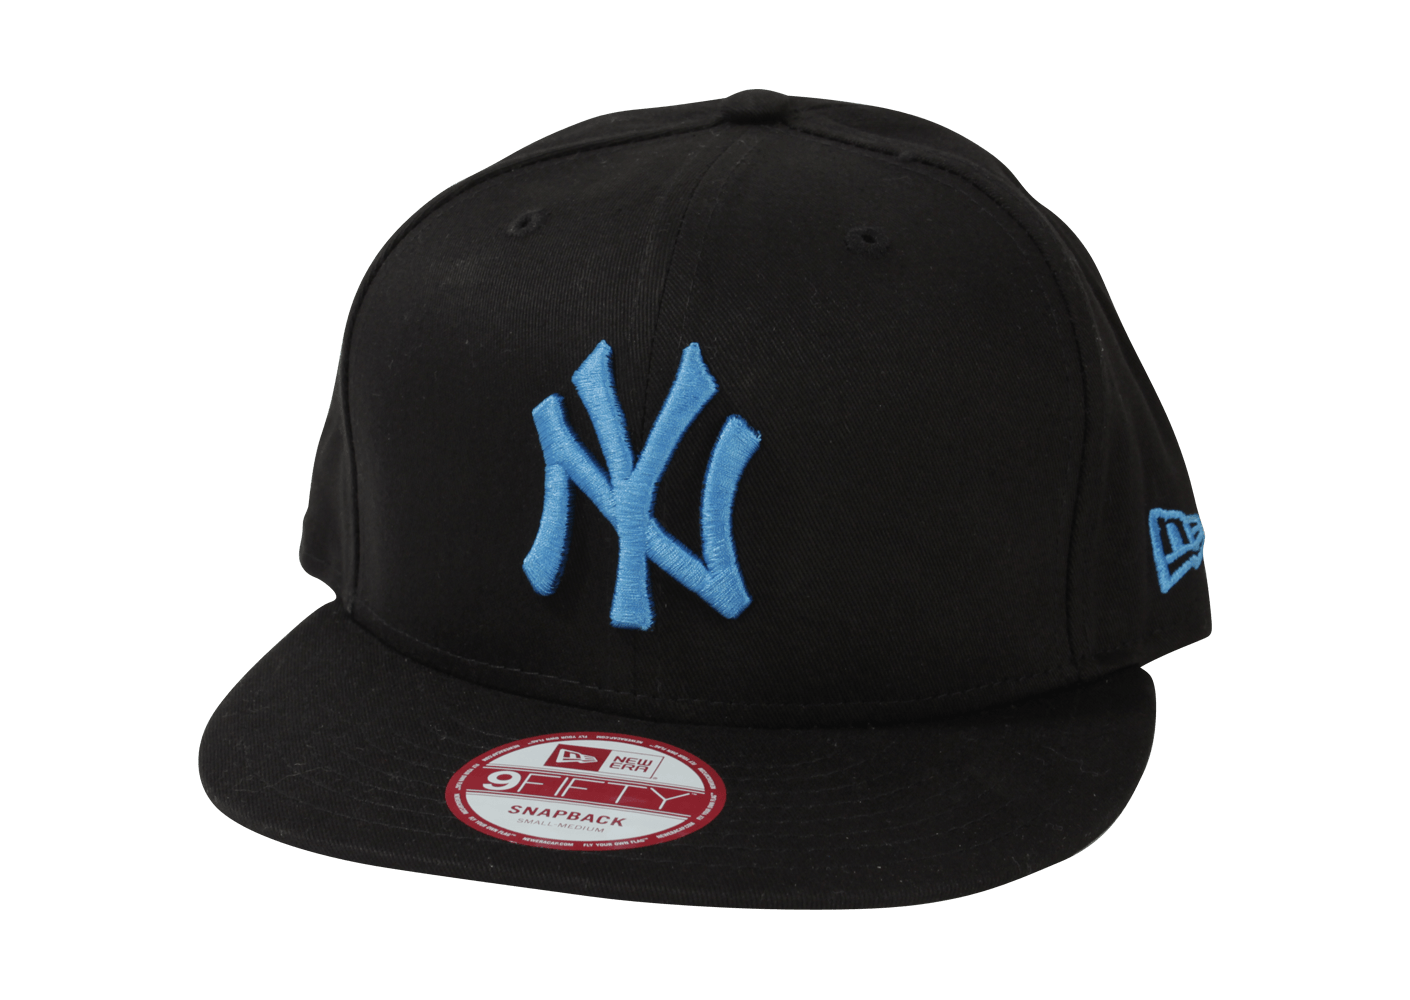 new era casquette snapback ny noir et bleu casquettes chausport. Black Bedroom Furniture Sets. Home Design Ideas